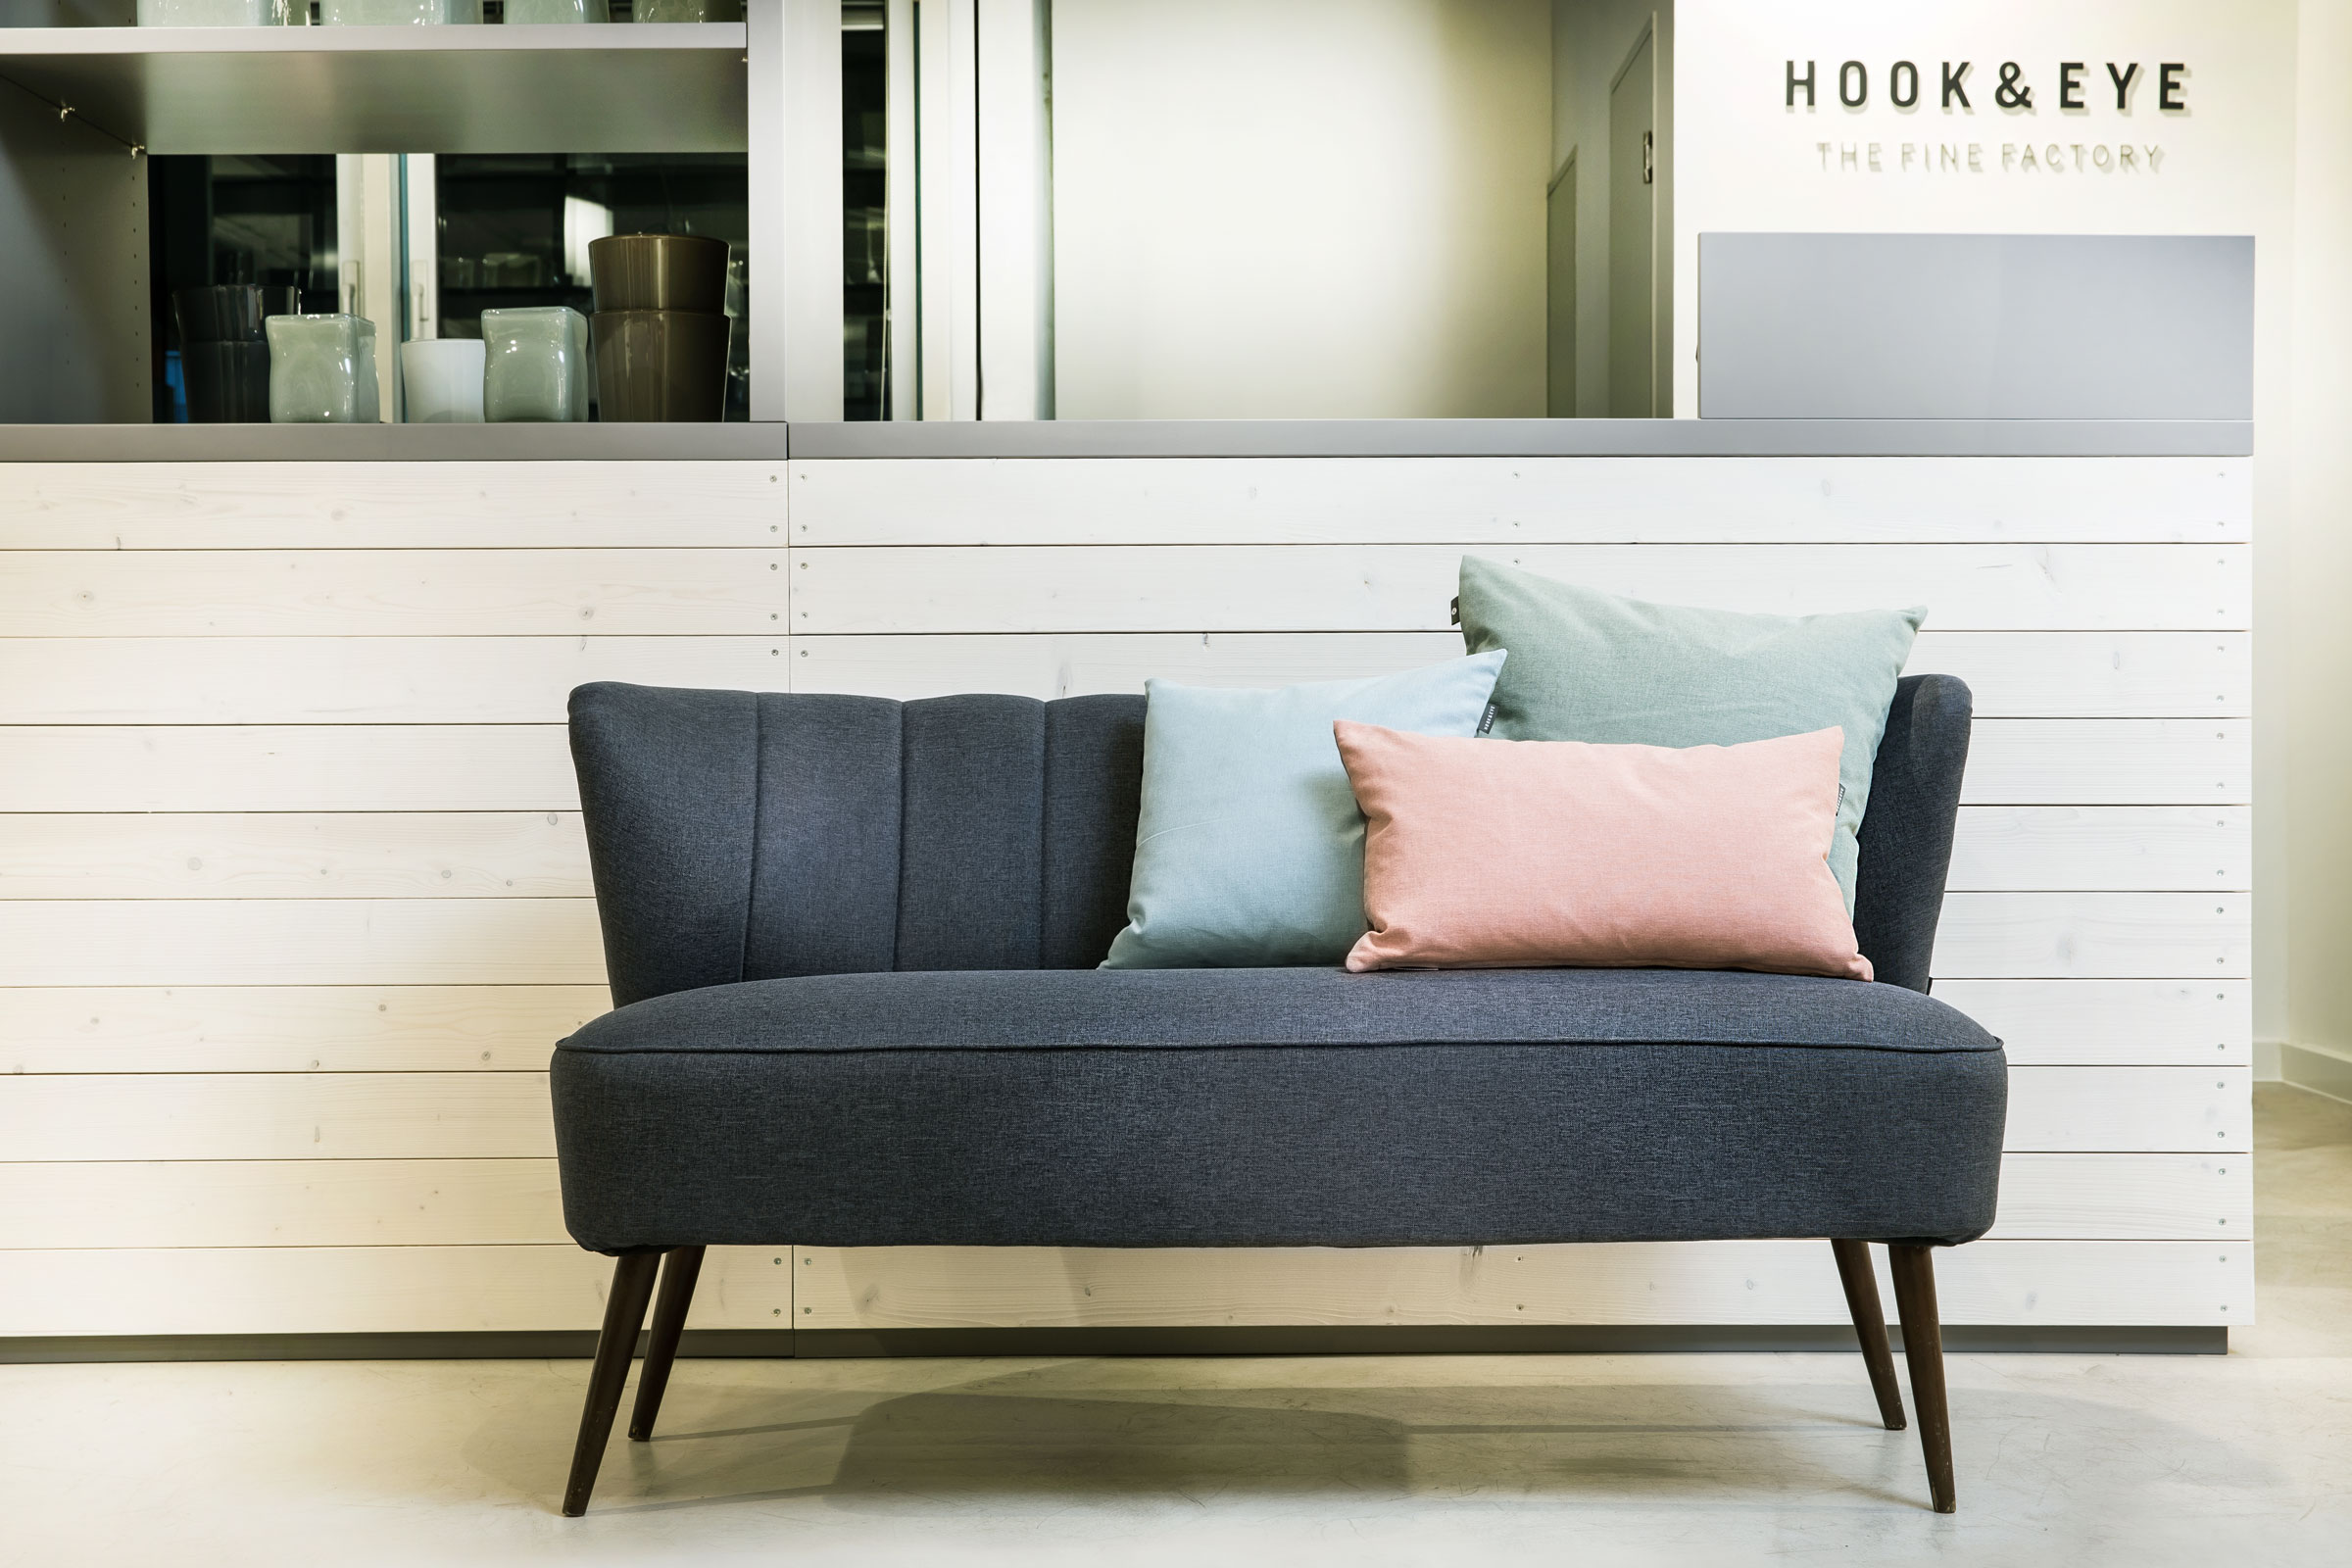 Hook and eye, Möbel Sofa